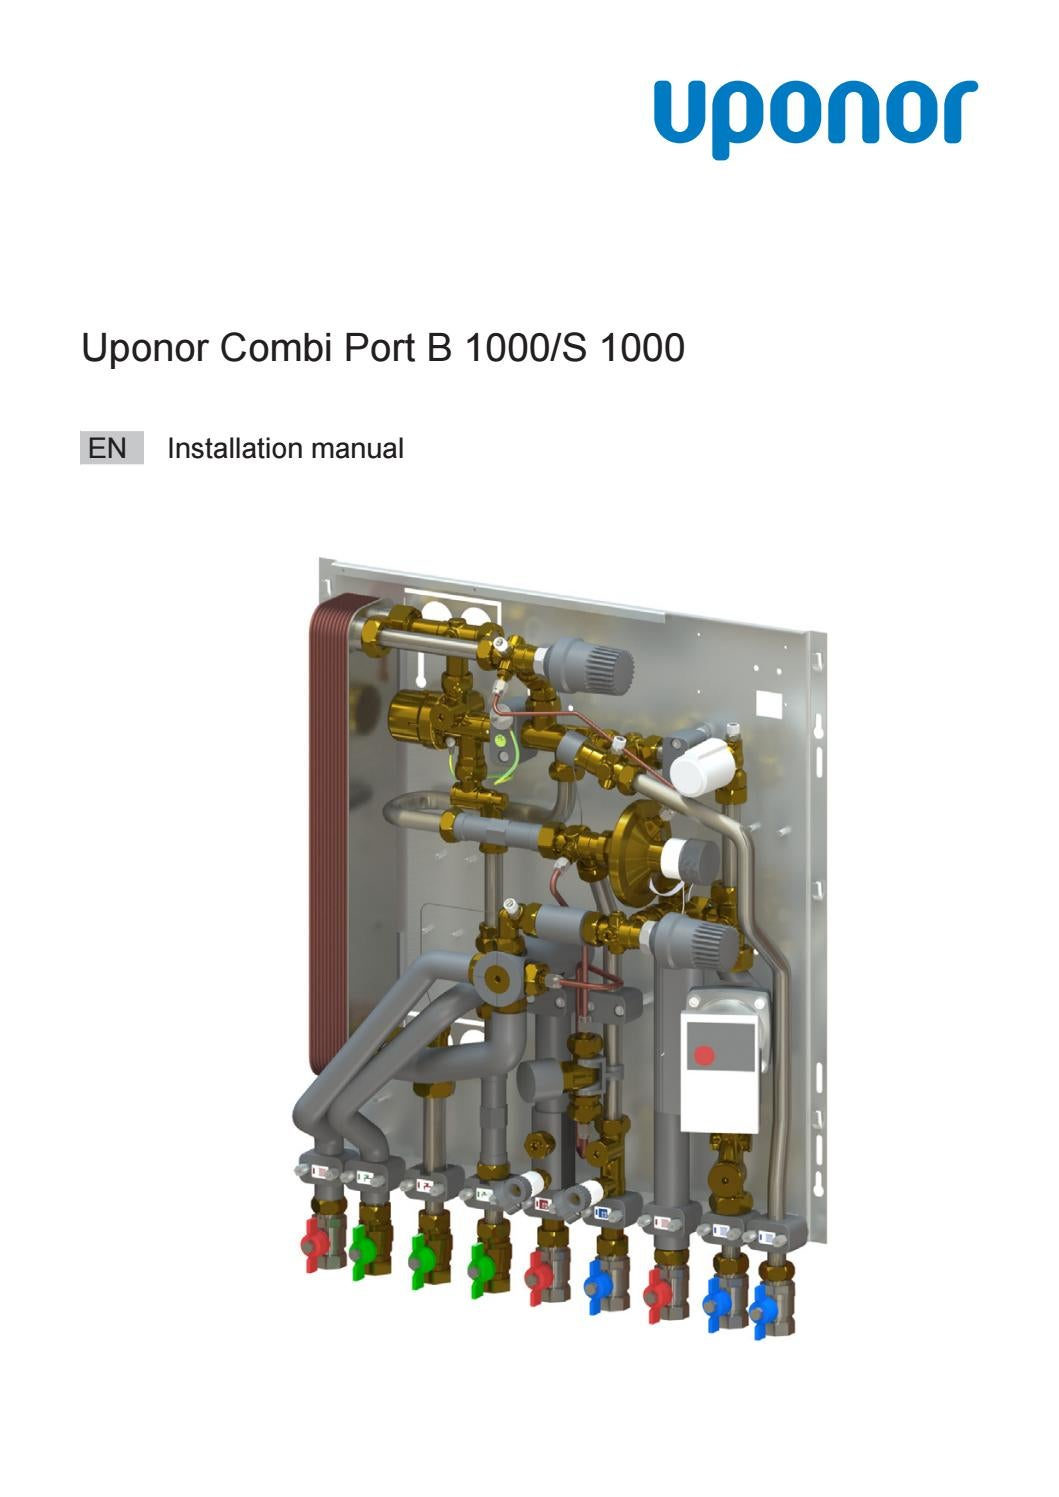 Estrich Legen Uponor Installation Manual Combi Port B1000 Up To S1000 By Uponor